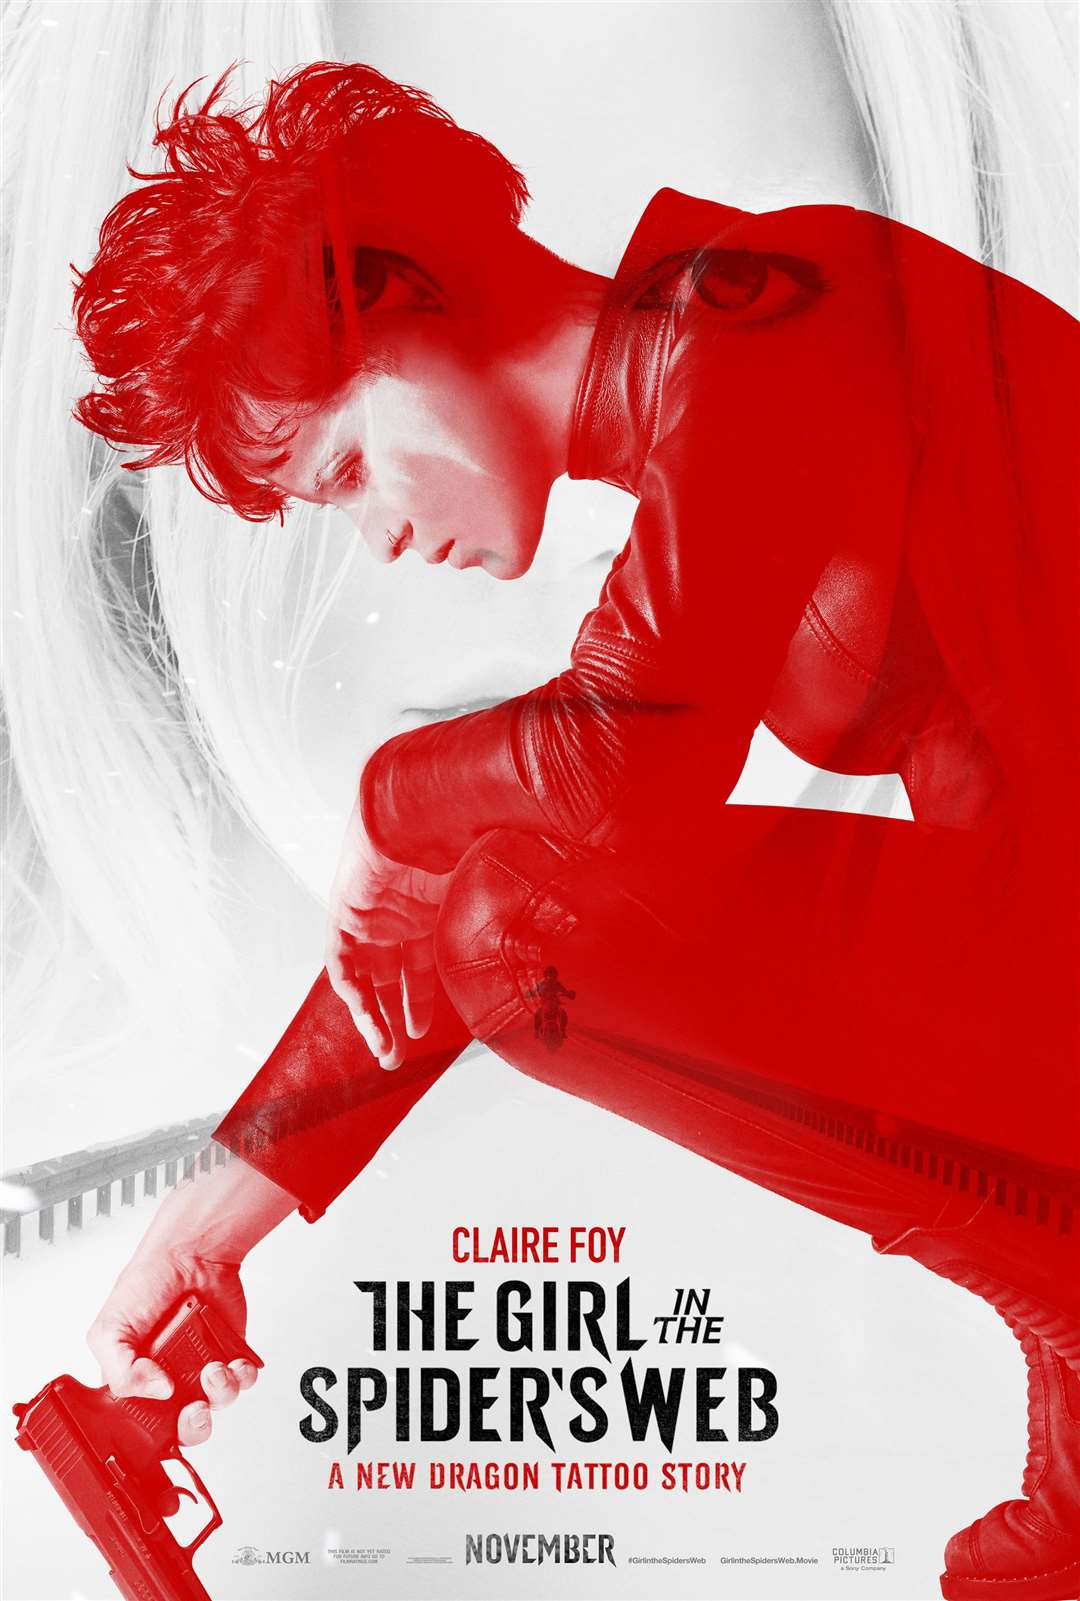 THE GIRL IN THE SPIDER'S WEB (4990944)